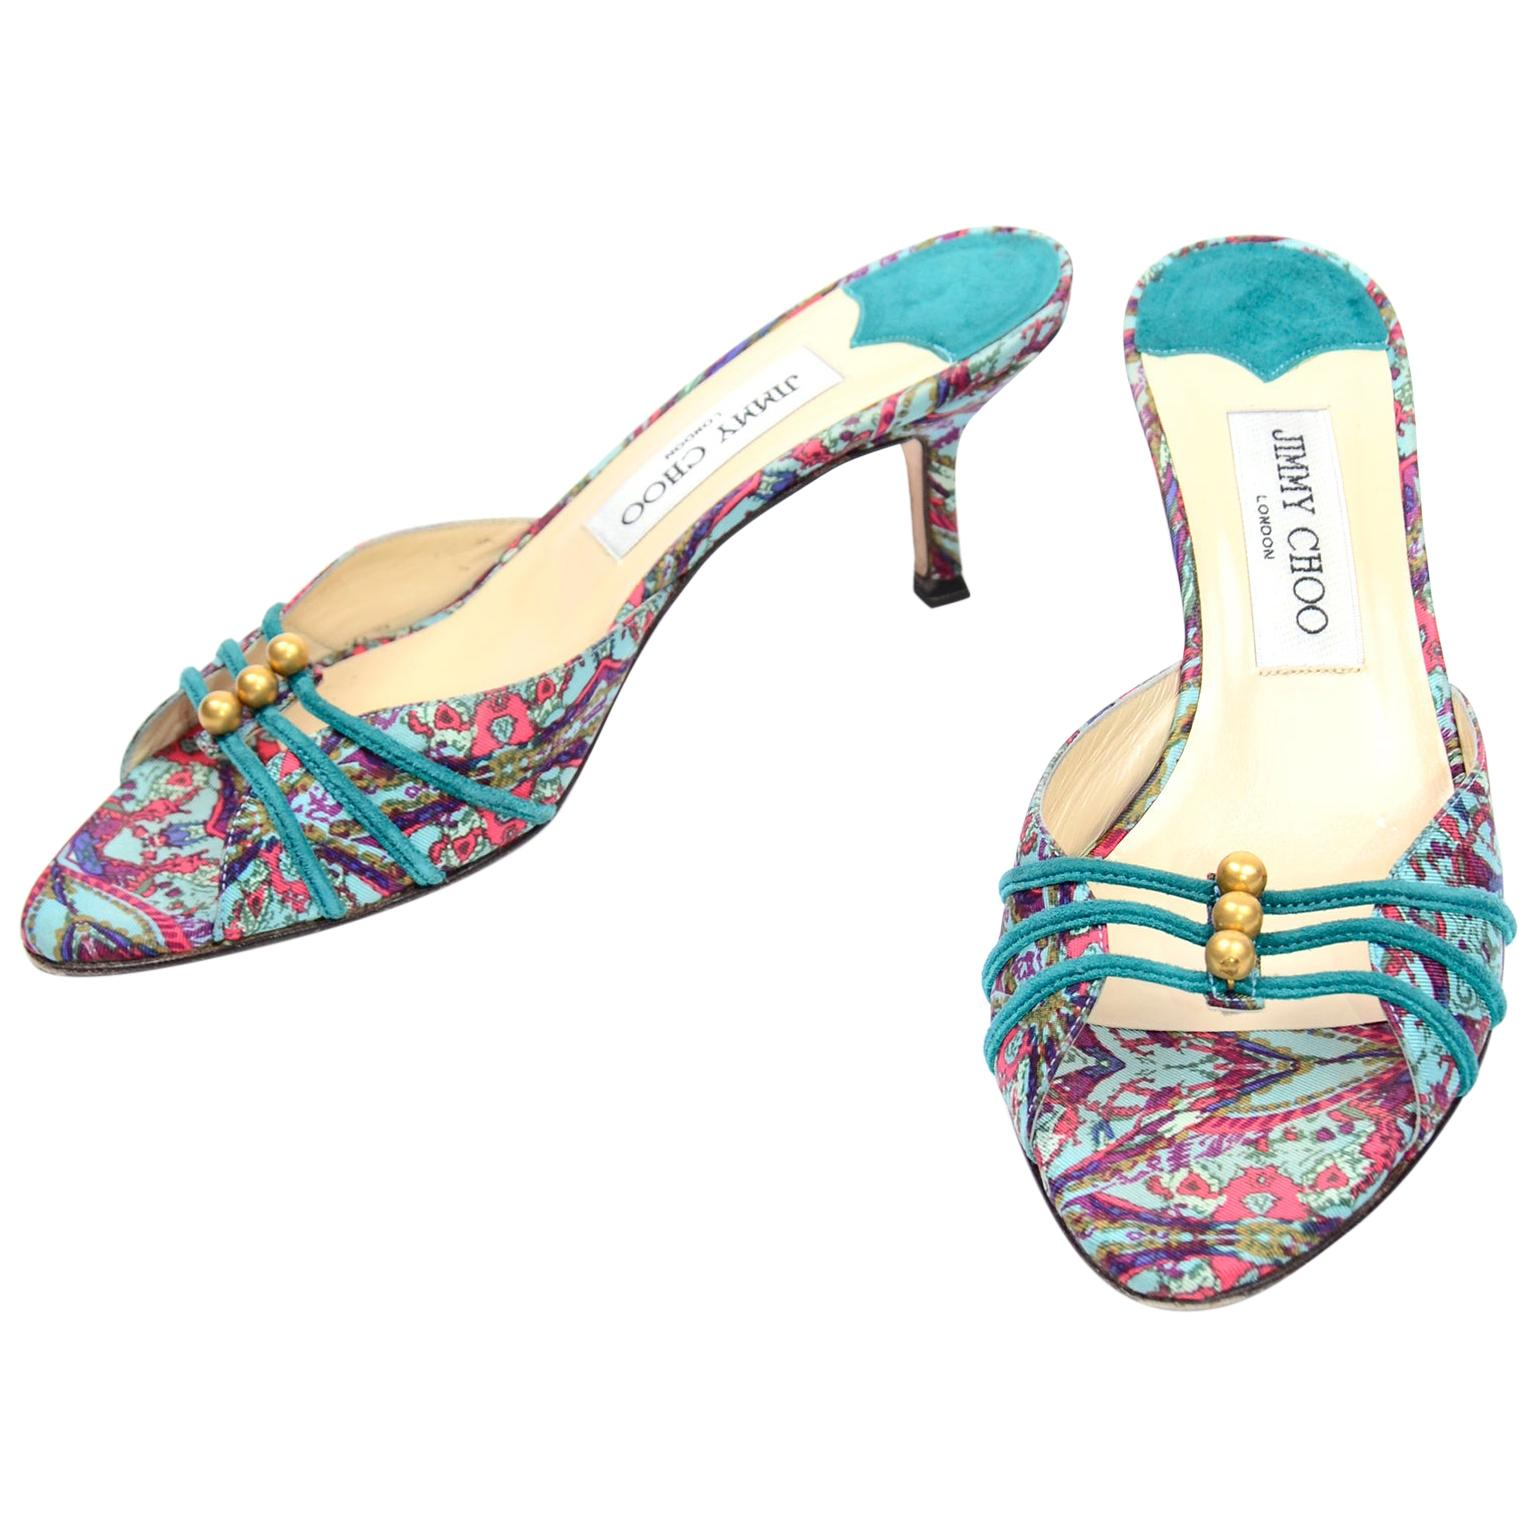 Jimmy Choo London Colorful Mules Shoes in Turquoise Print W Heels & Gold Beads